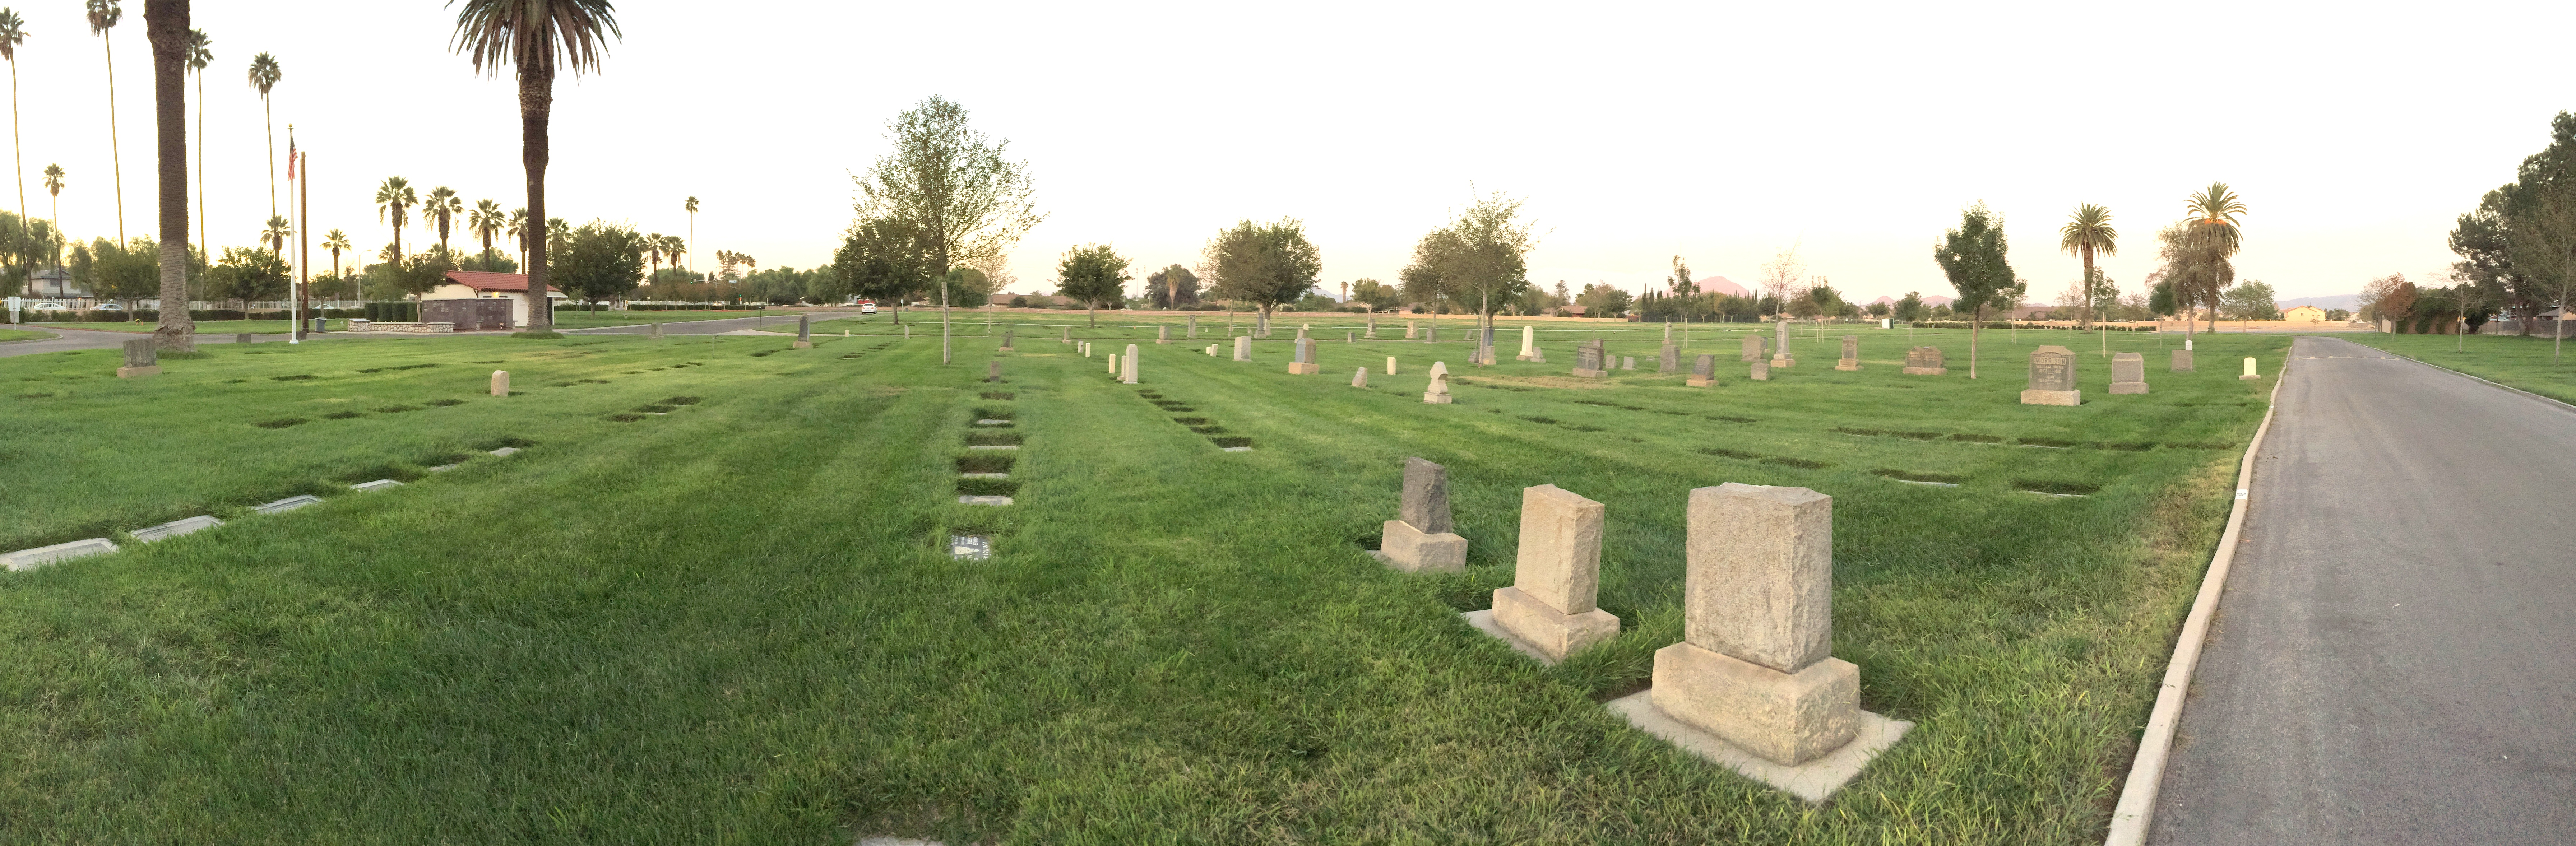 Perris Valley Cemetery in Perris, California - Find A Grave Cemetery